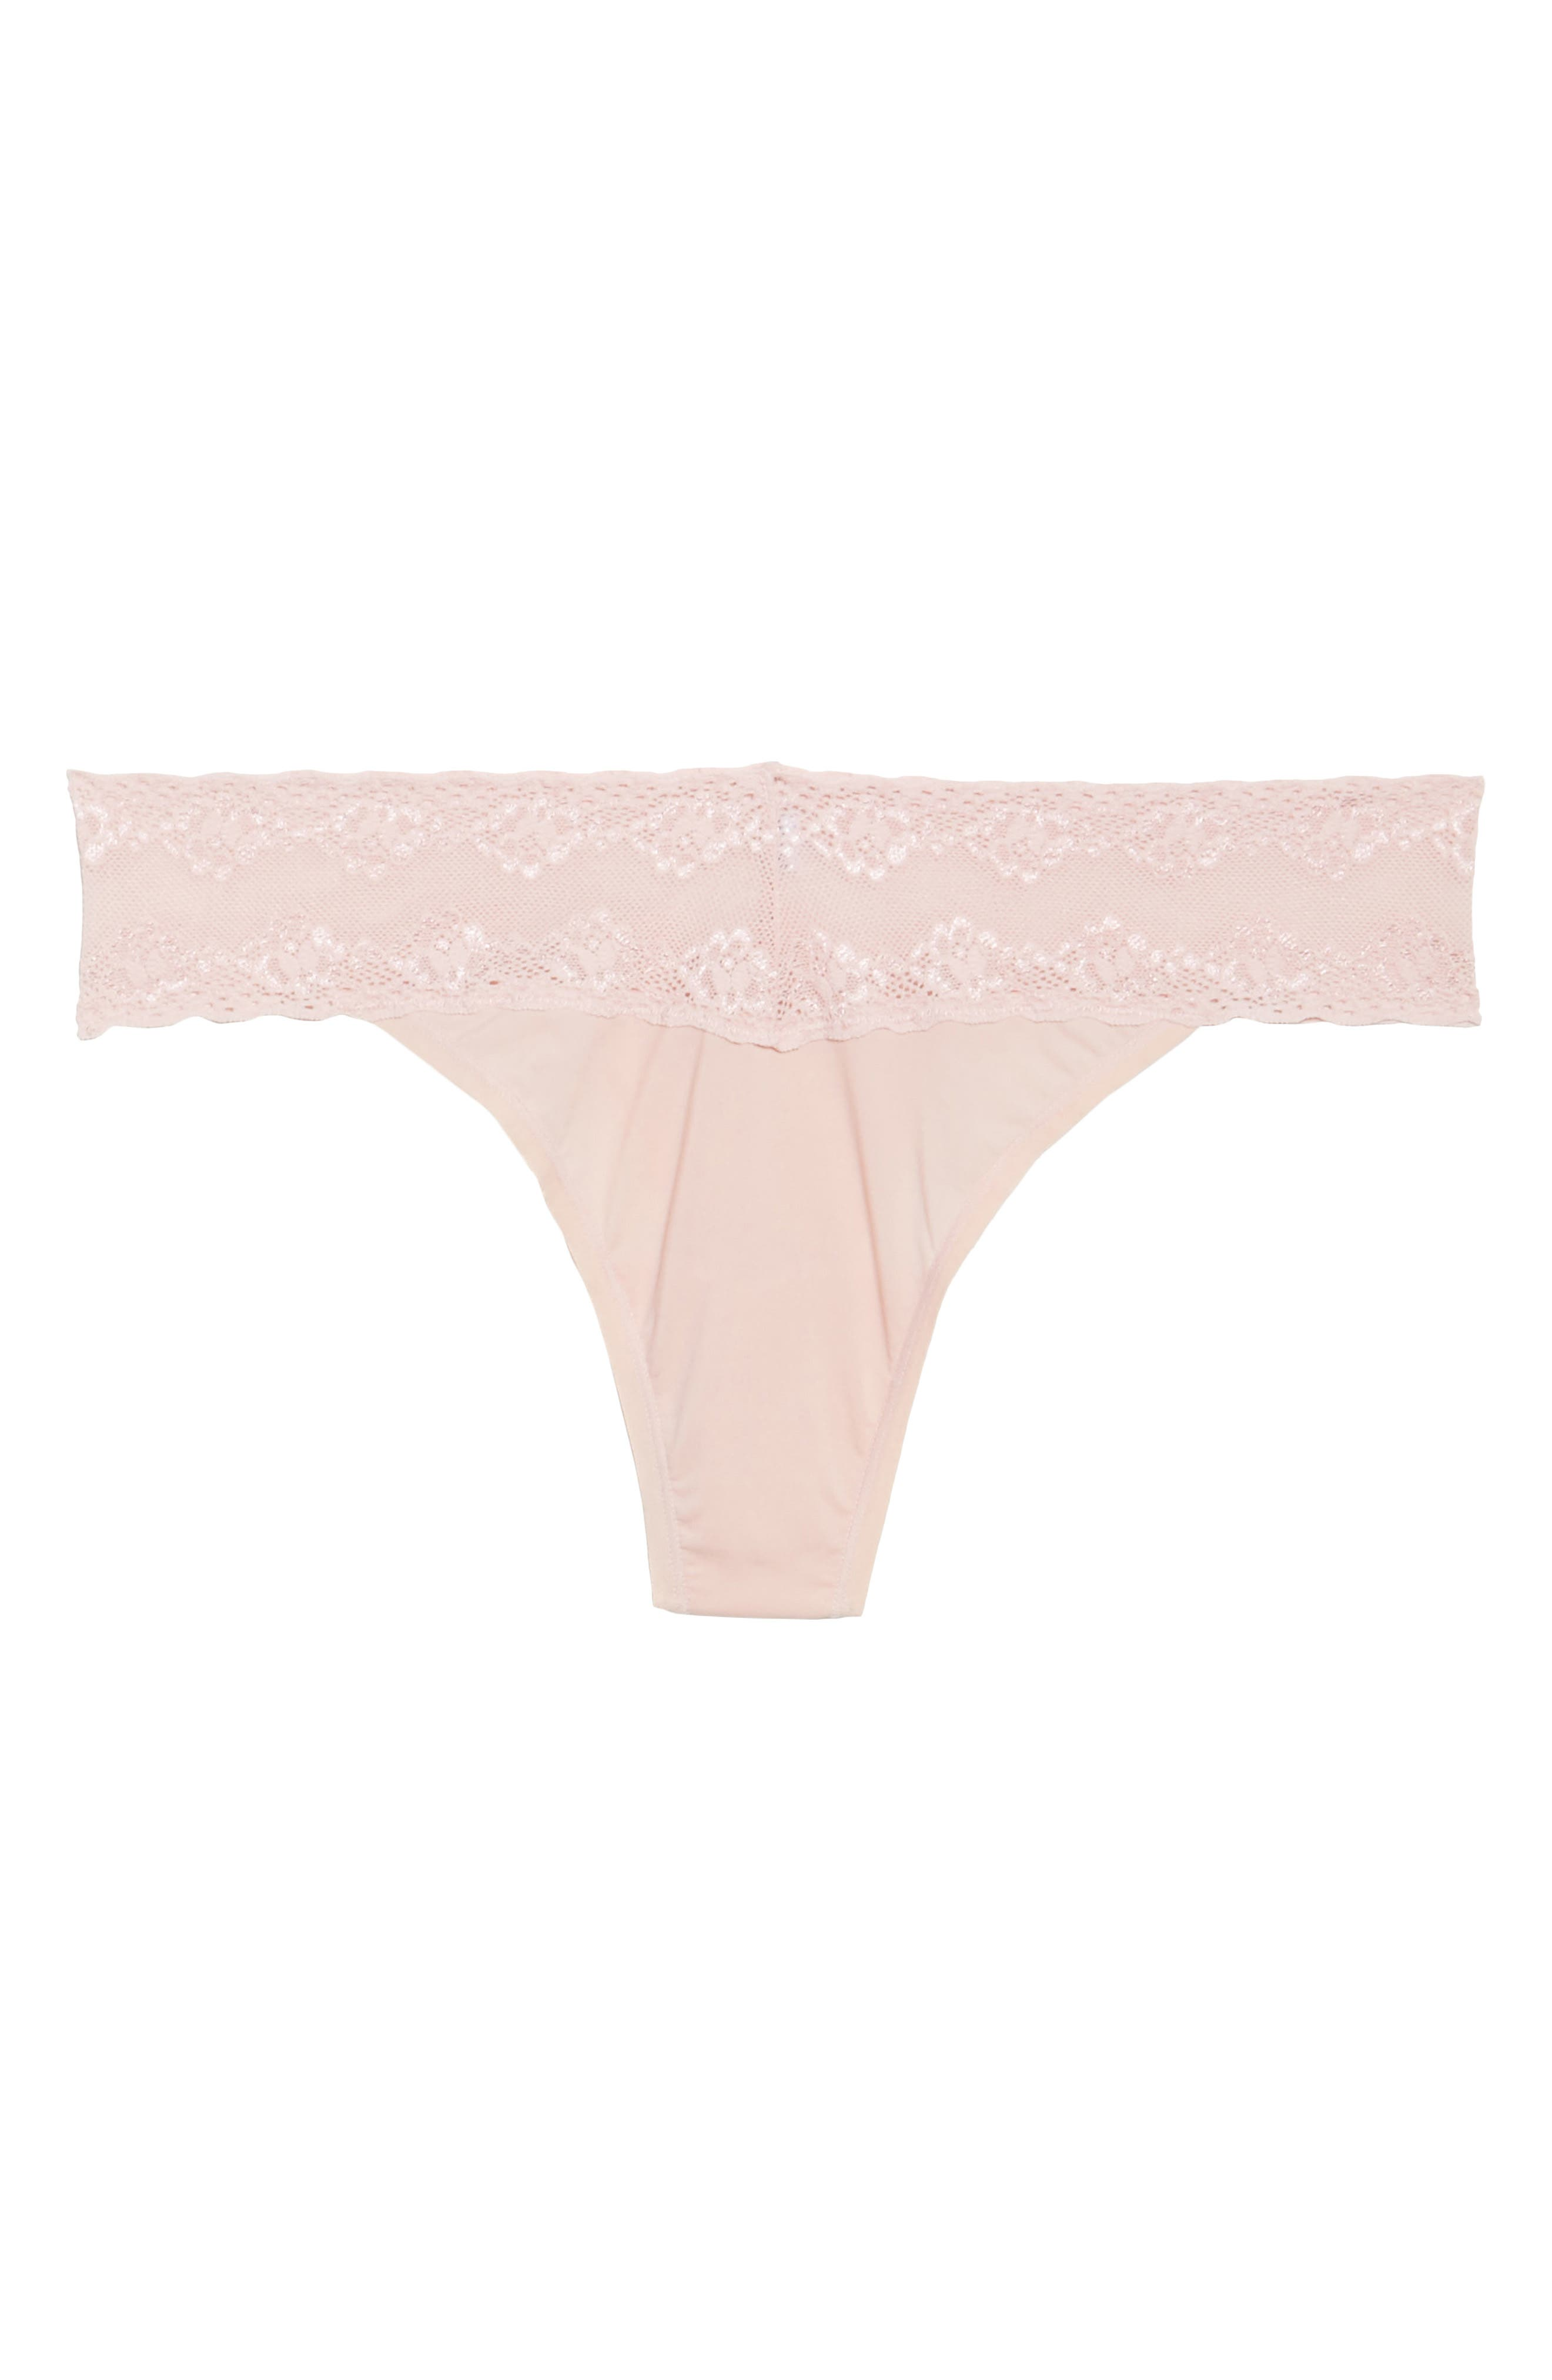 Bliss Perfection Thong,                             Alternate thumbnail 414, color,